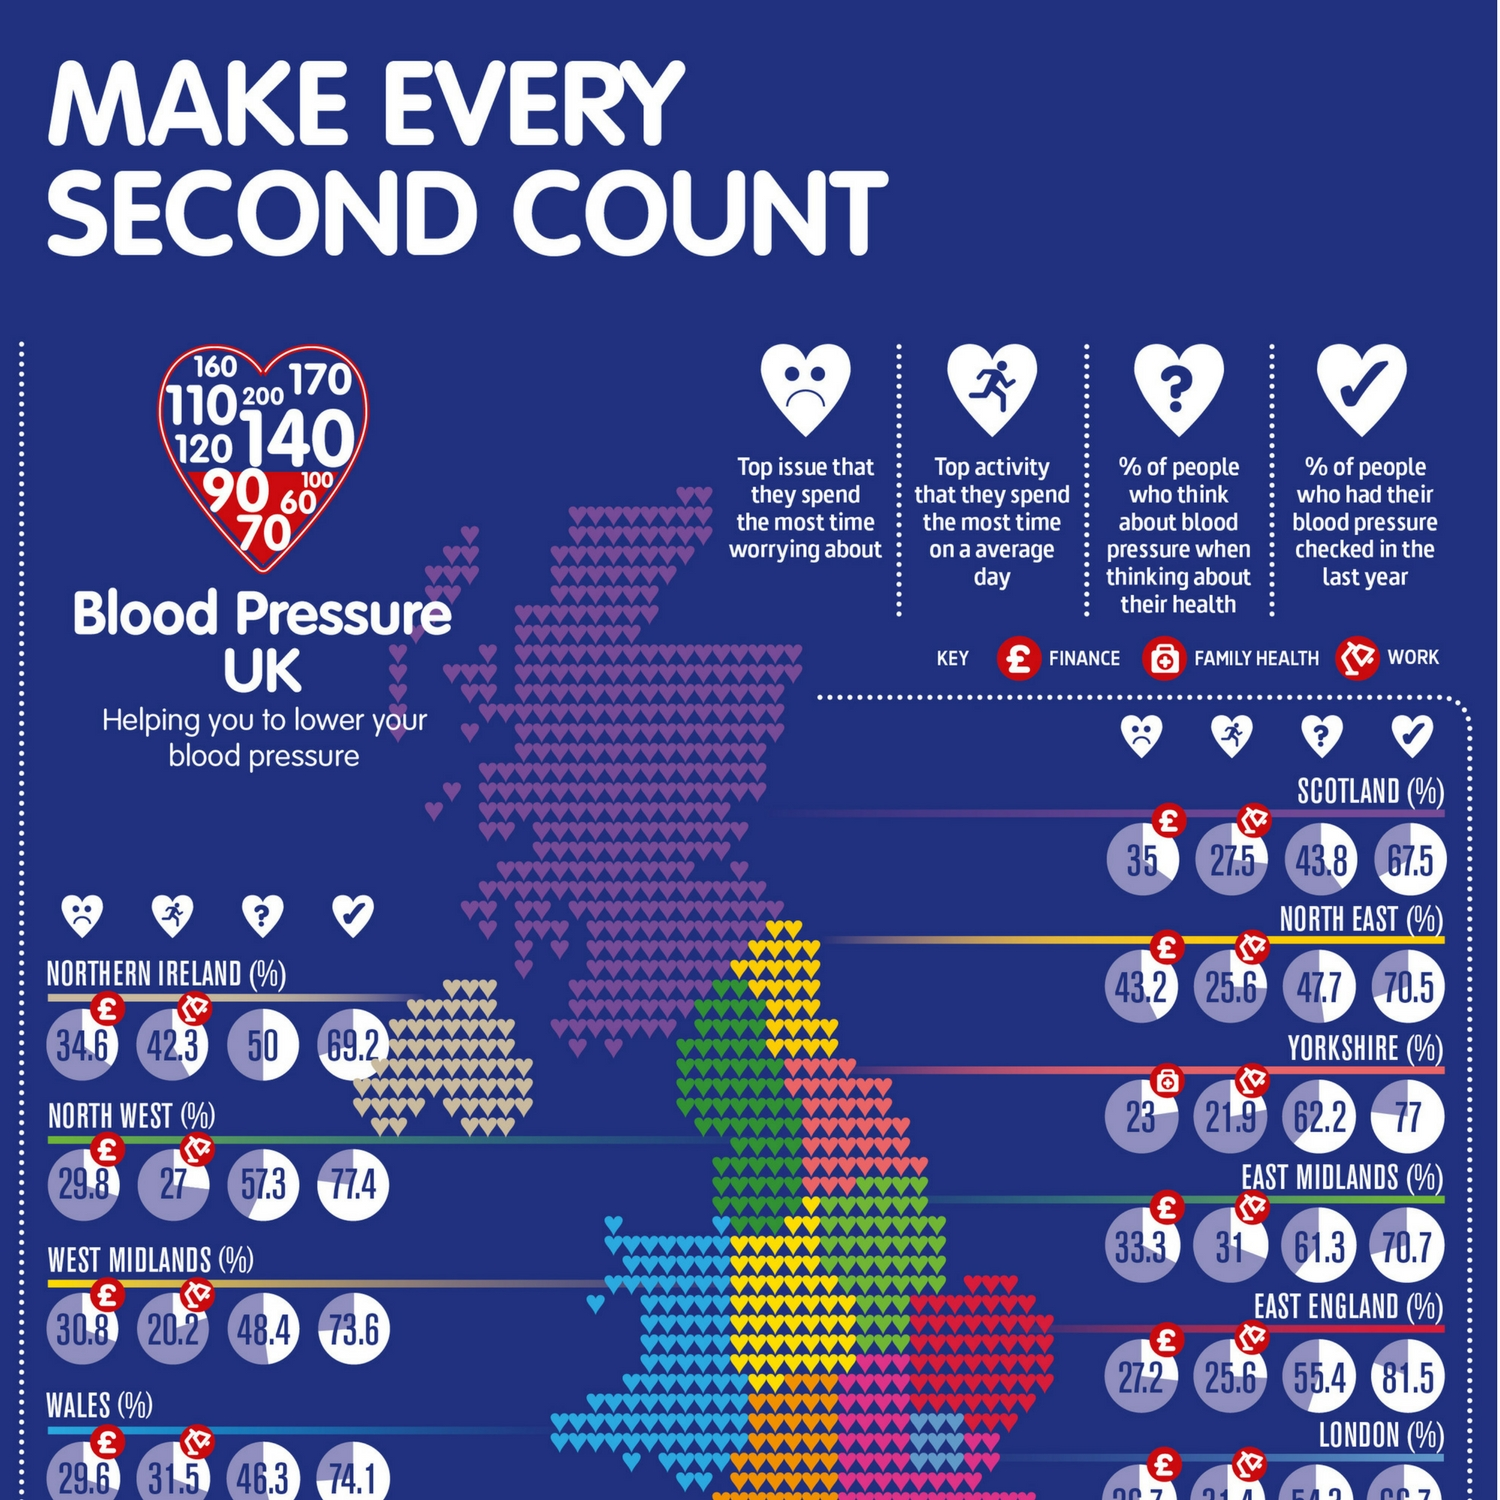 Blood Pressure UK charity.jpg